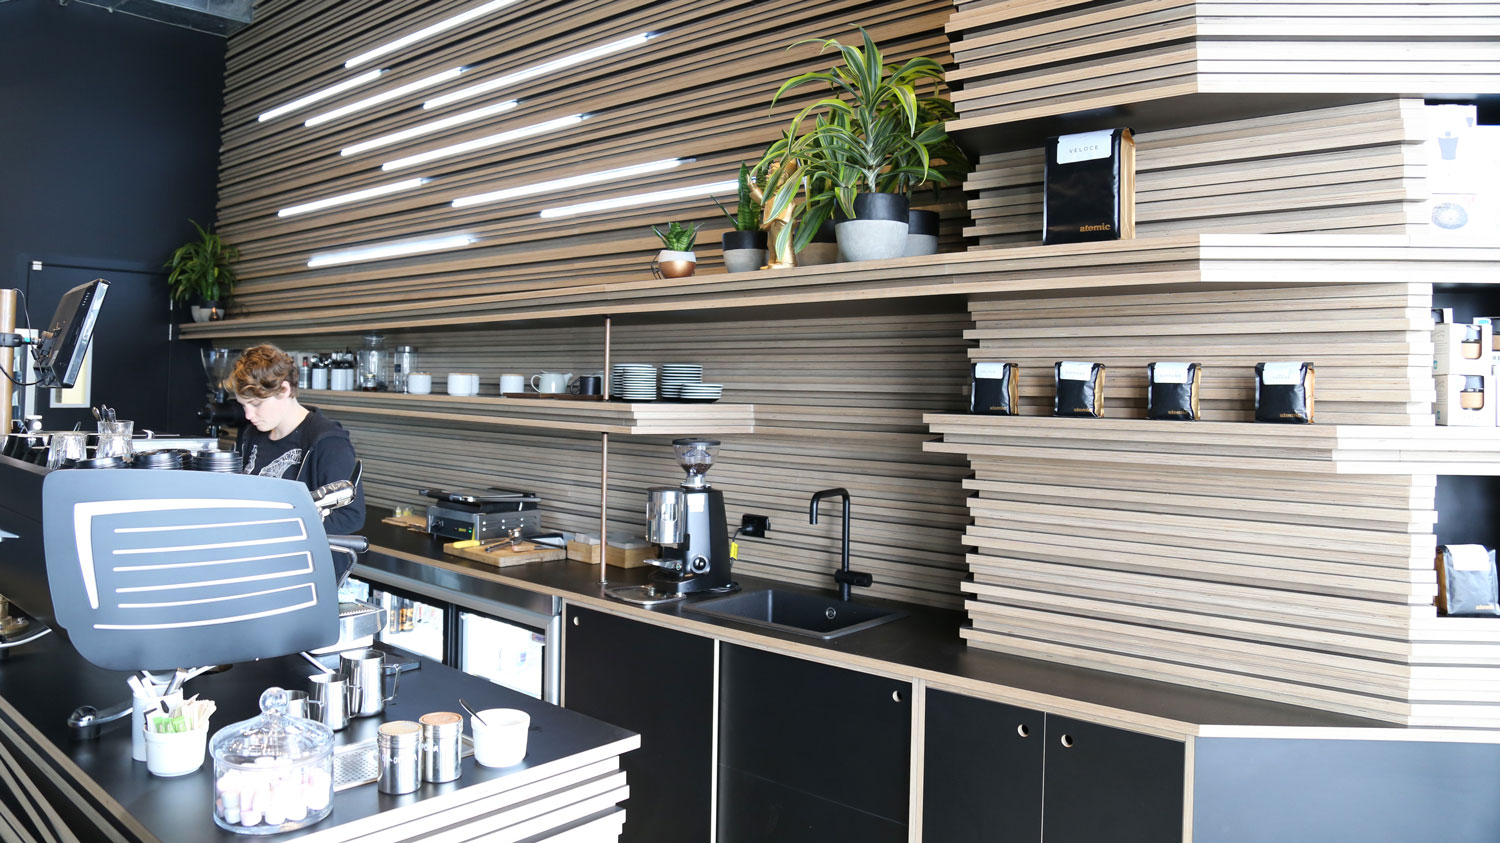 "<p><strong>Atomic</strong>Izzard<a href=""https://www.eboss.co.nz/ebossnow/plytech-futura-hpl-unique-stacked-ply-cabinetry-atomic-cafe""target=""_blank"">More</a></p>"